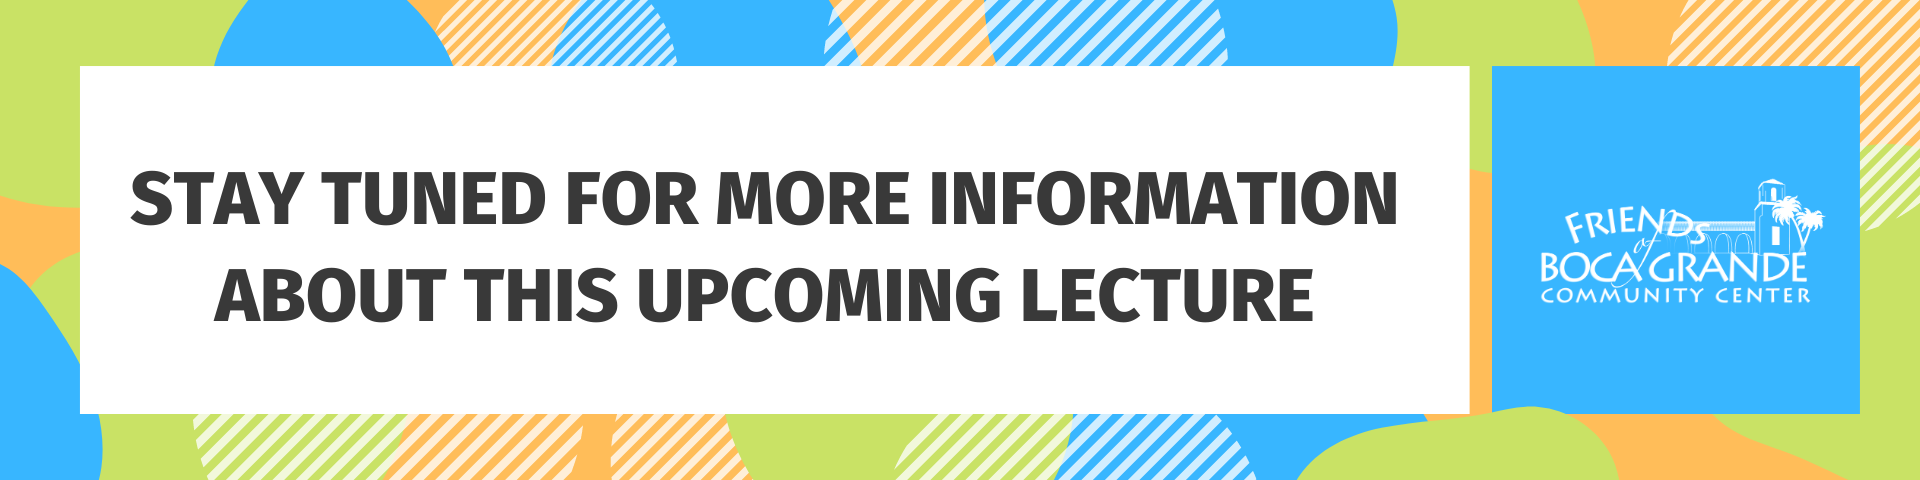 Stay tuned for more information about this upcoming lecture.